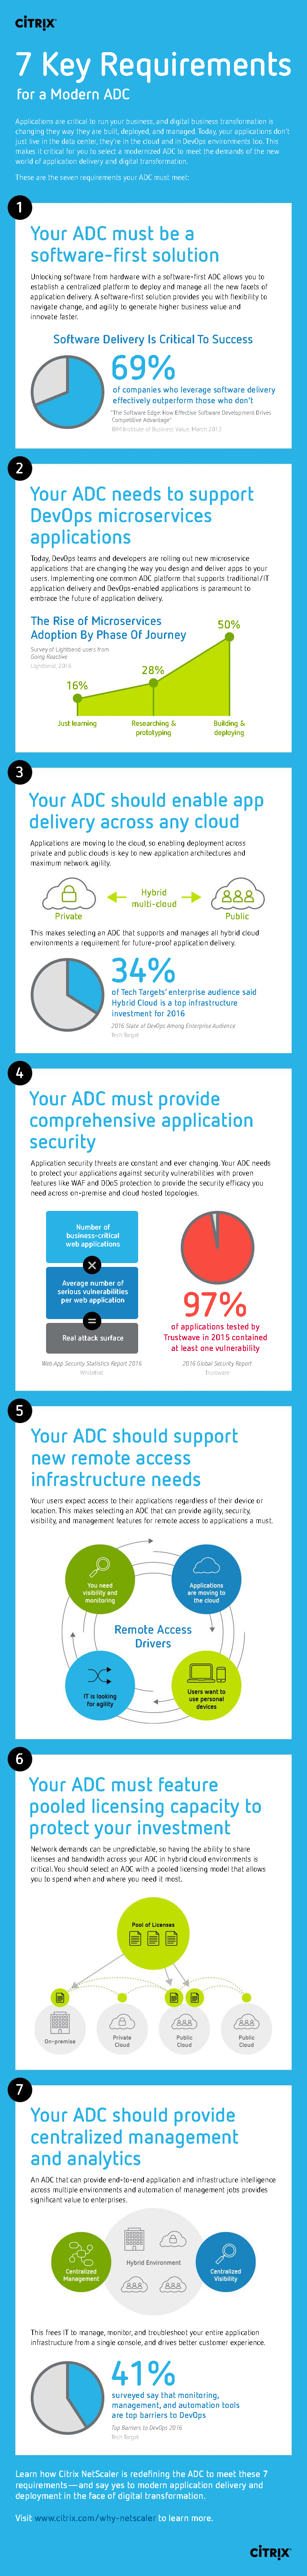 Thumb original 7 key requirements for a modern adc infographic